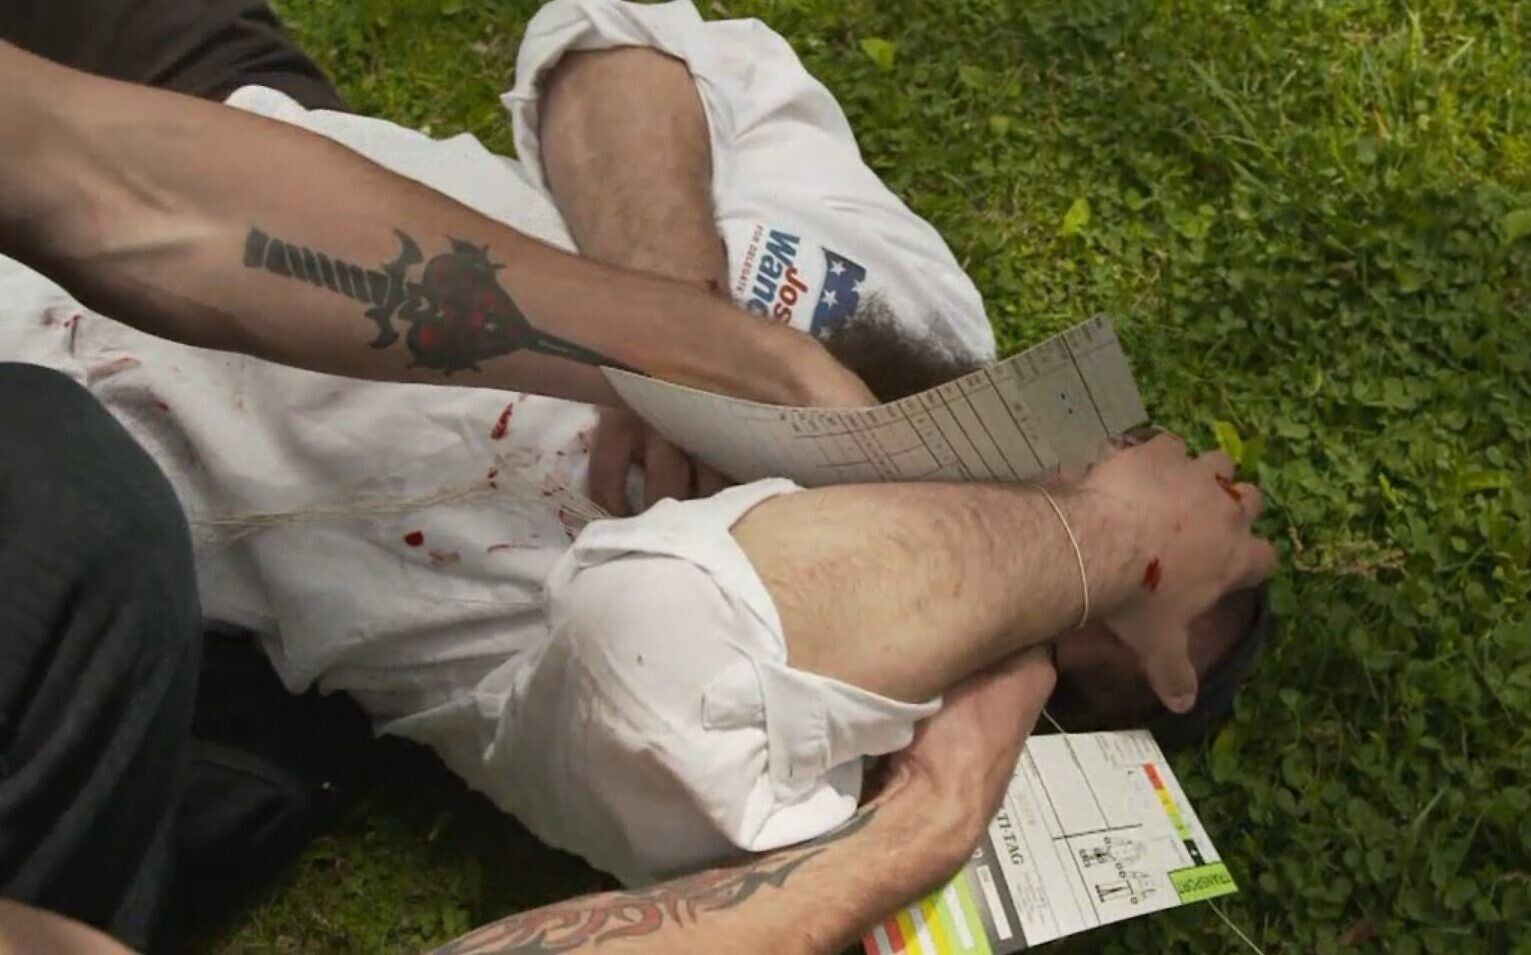 An Orthodox Jew pretends to be injured during an emergency preparedness 'bug-out' drill for Joshua Wander's family and friends in 'Doomsday Preppers.' (Screenshot/ National Geographic)